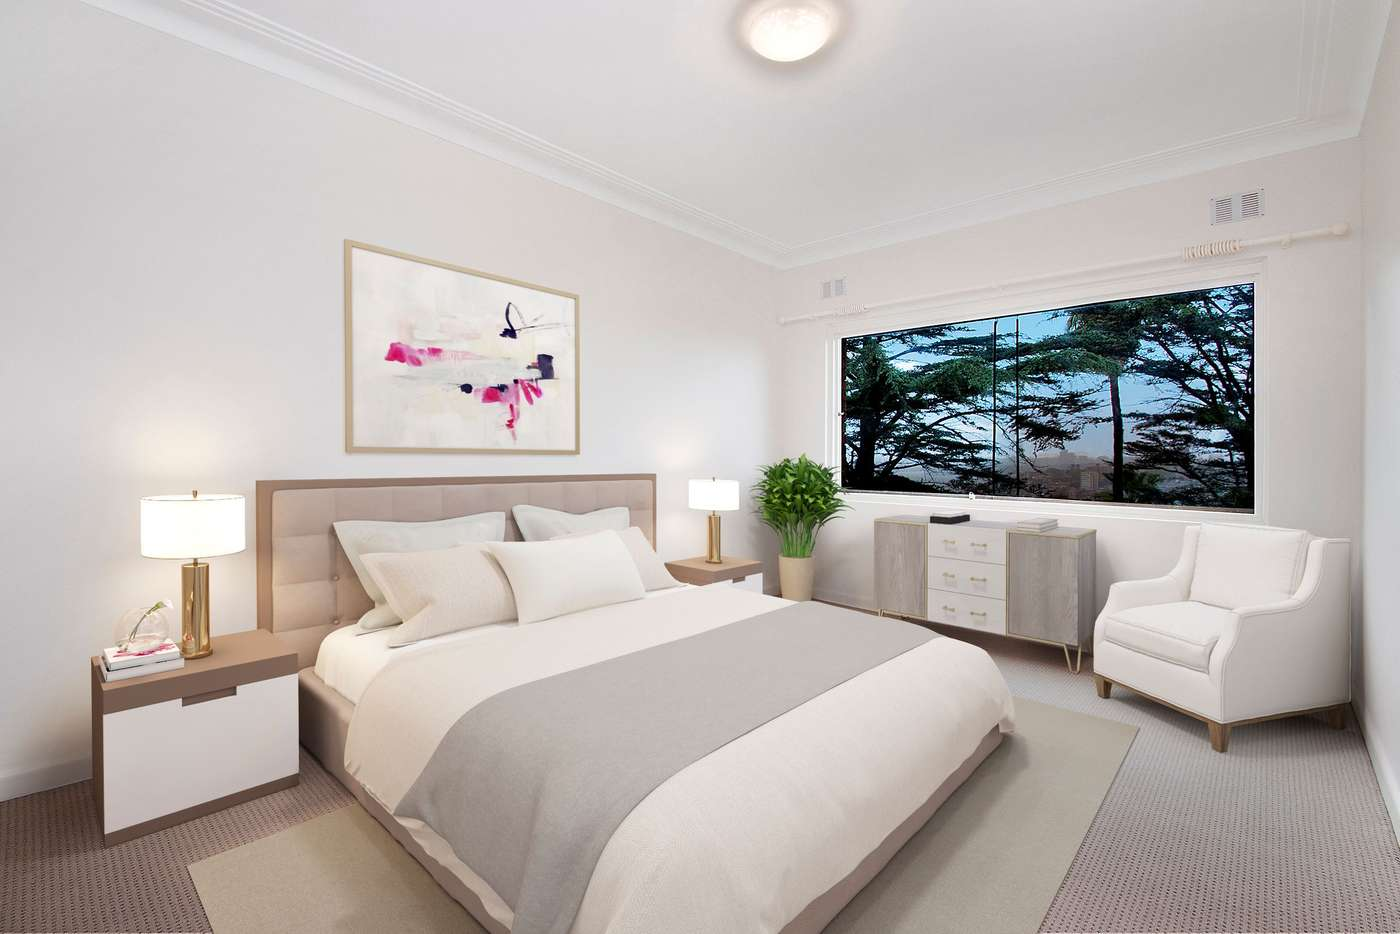 Main view of Homely apartment listing, 11/62-64 Aubin Street, Neutral Bay NSW 2089